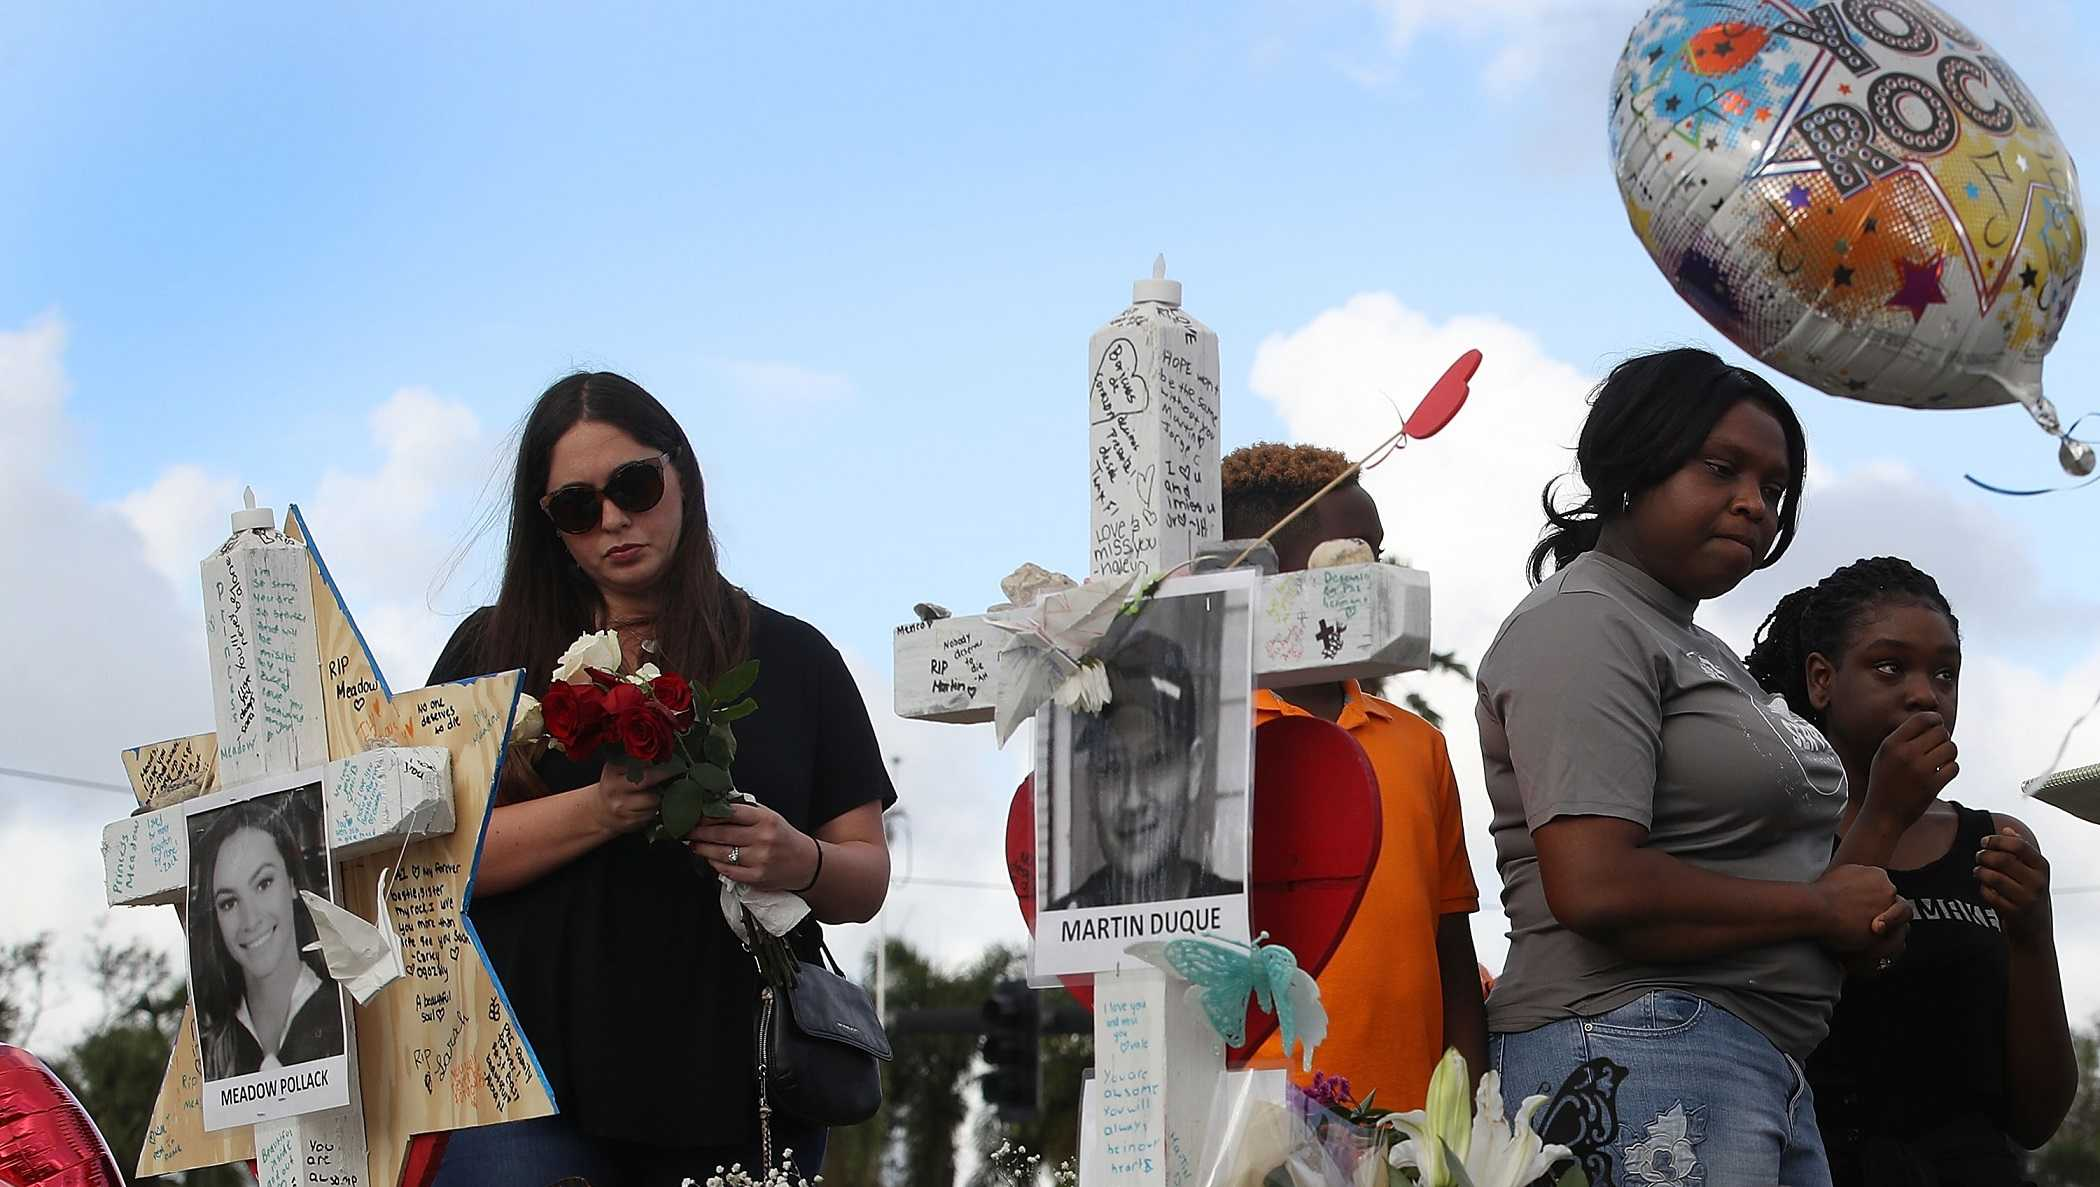 People visit a makeshift memorial setup in front of Marjory Stoneman Douglas High School on February 19, 2018 in Parkland, Florida. Police arrested and charged 19 year old former student Nikolas Cruz for the February 14 shooting that killed 17 people.